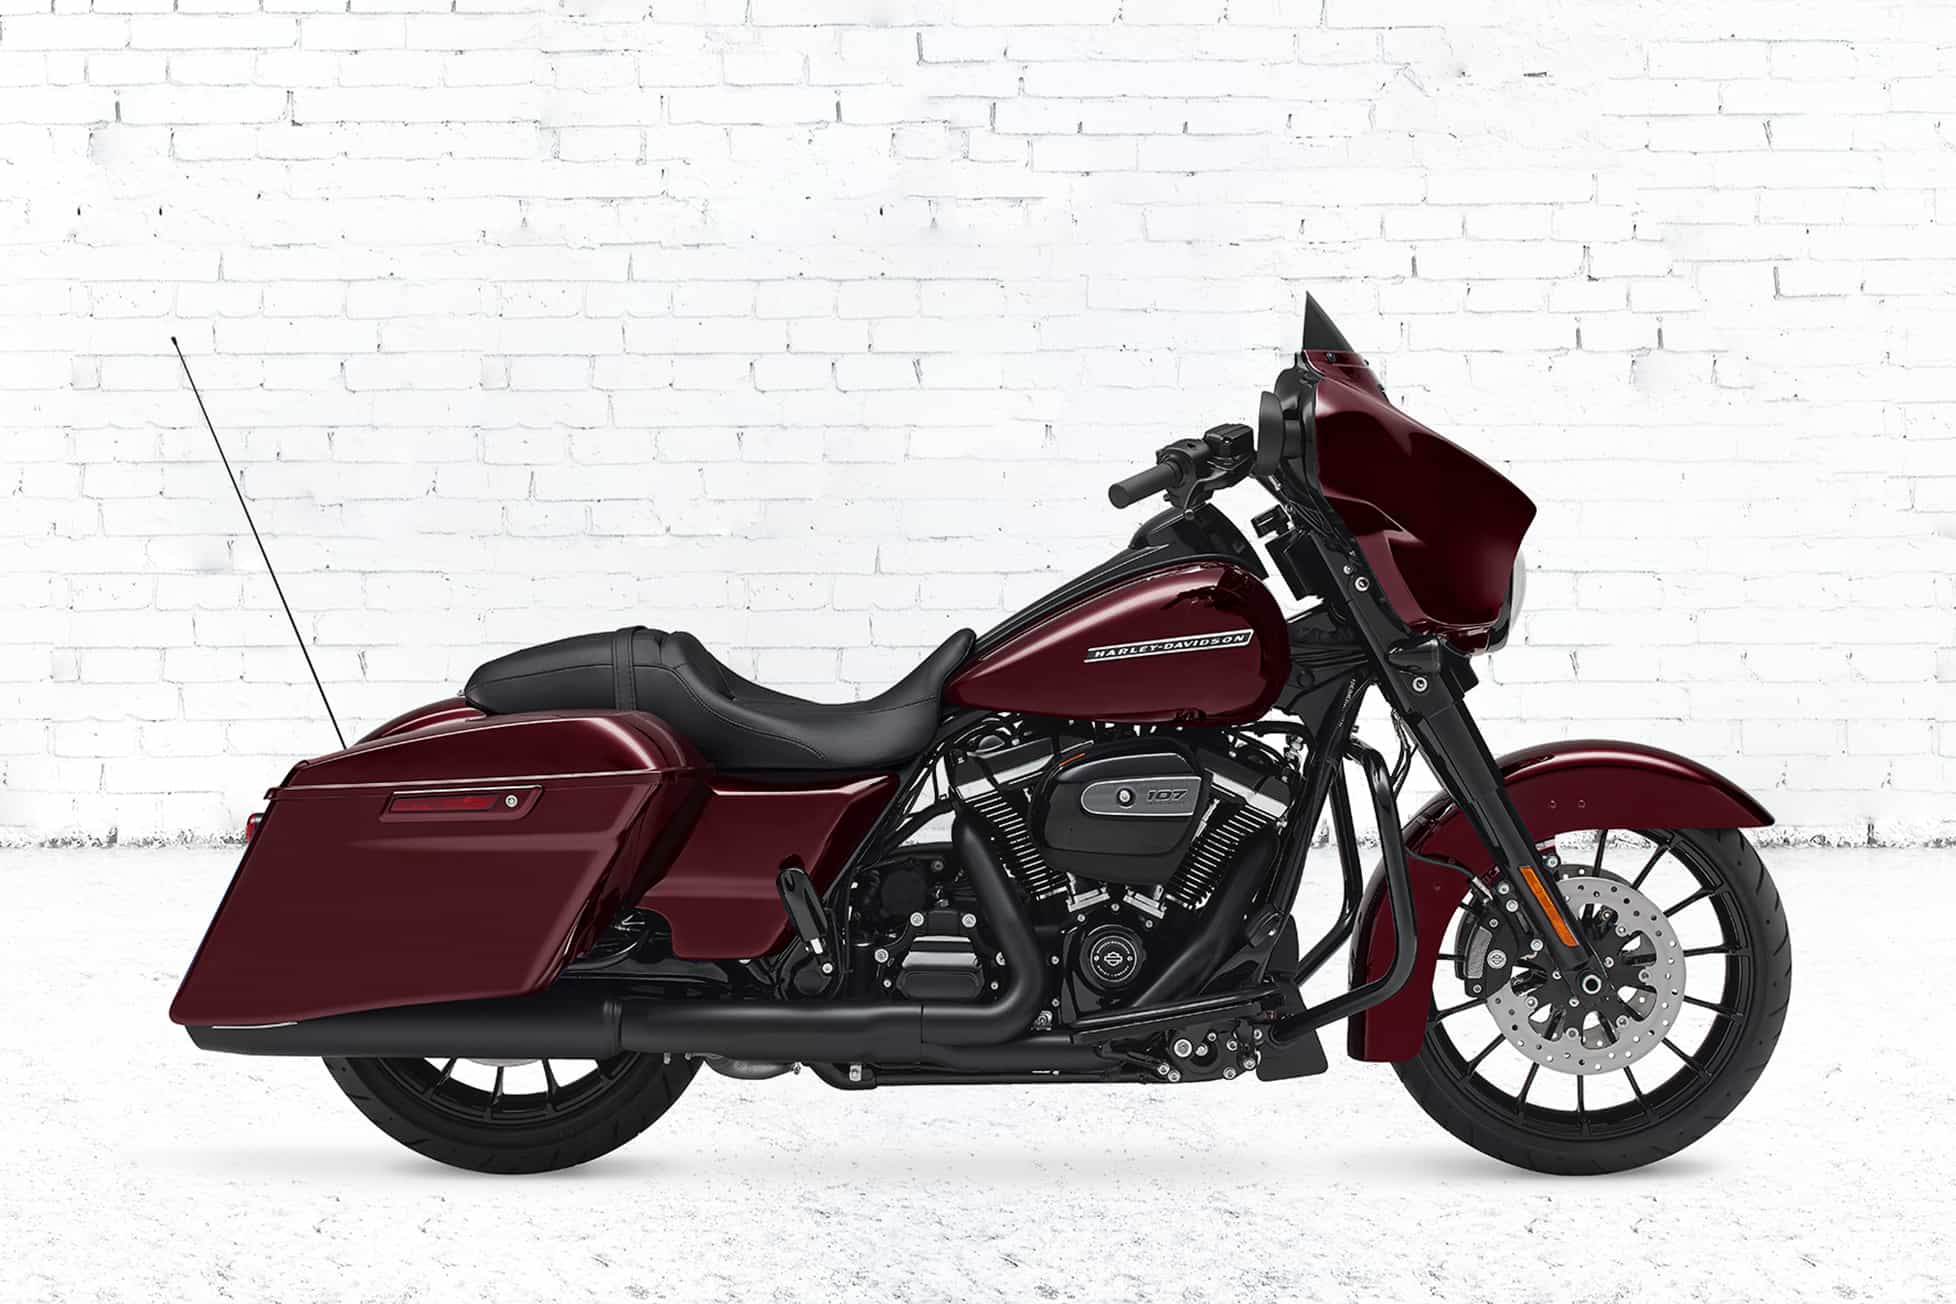 small resolution of 2007 street glide fuse box simple wiring diagrams 2012 street glide fuse box diagram 2012 street glide fuse box location